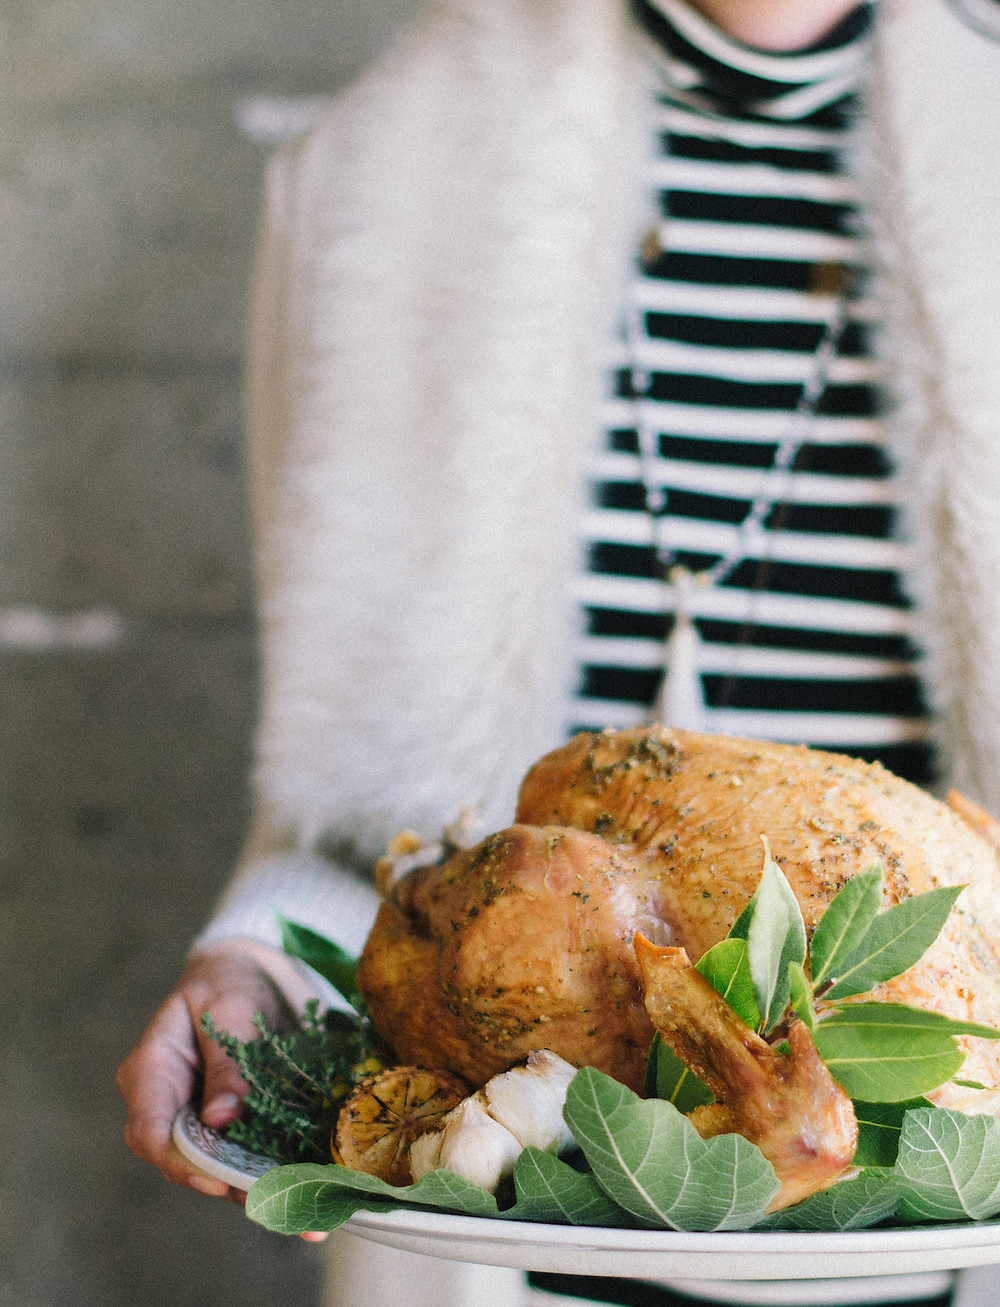 6 Tips on Cooking a Fool-Proof Turkey